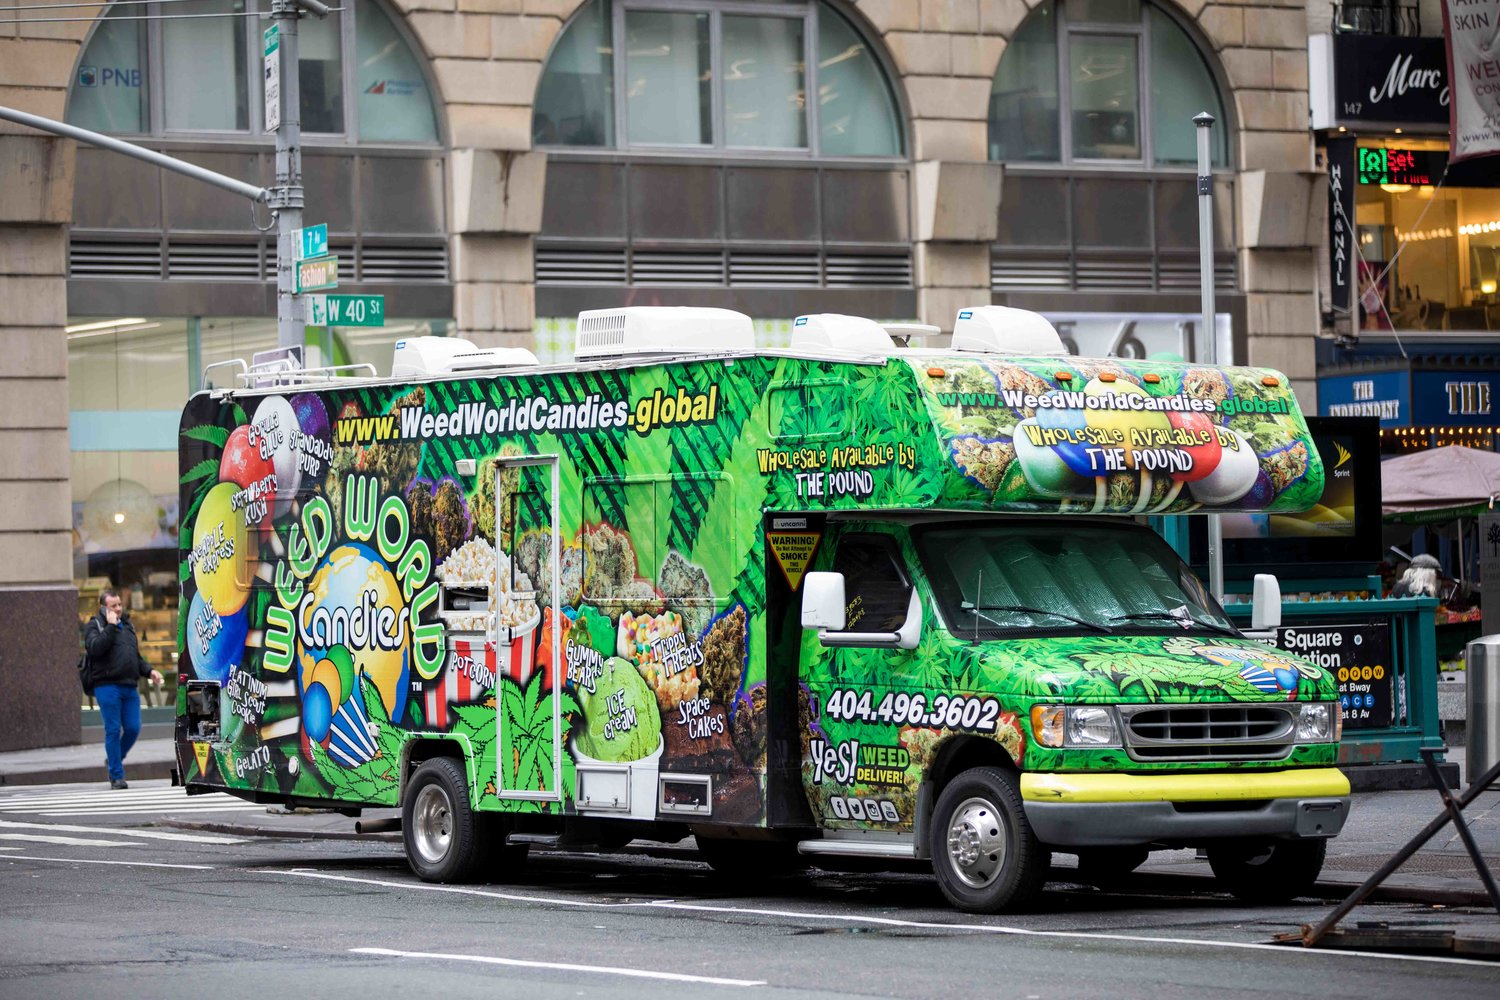 The trucks for Weed World Candies are a familiar sight in the city. While the organization doesn't sell marijuana, it does advocate for the legalization of the plant, which could soon happen in the state.